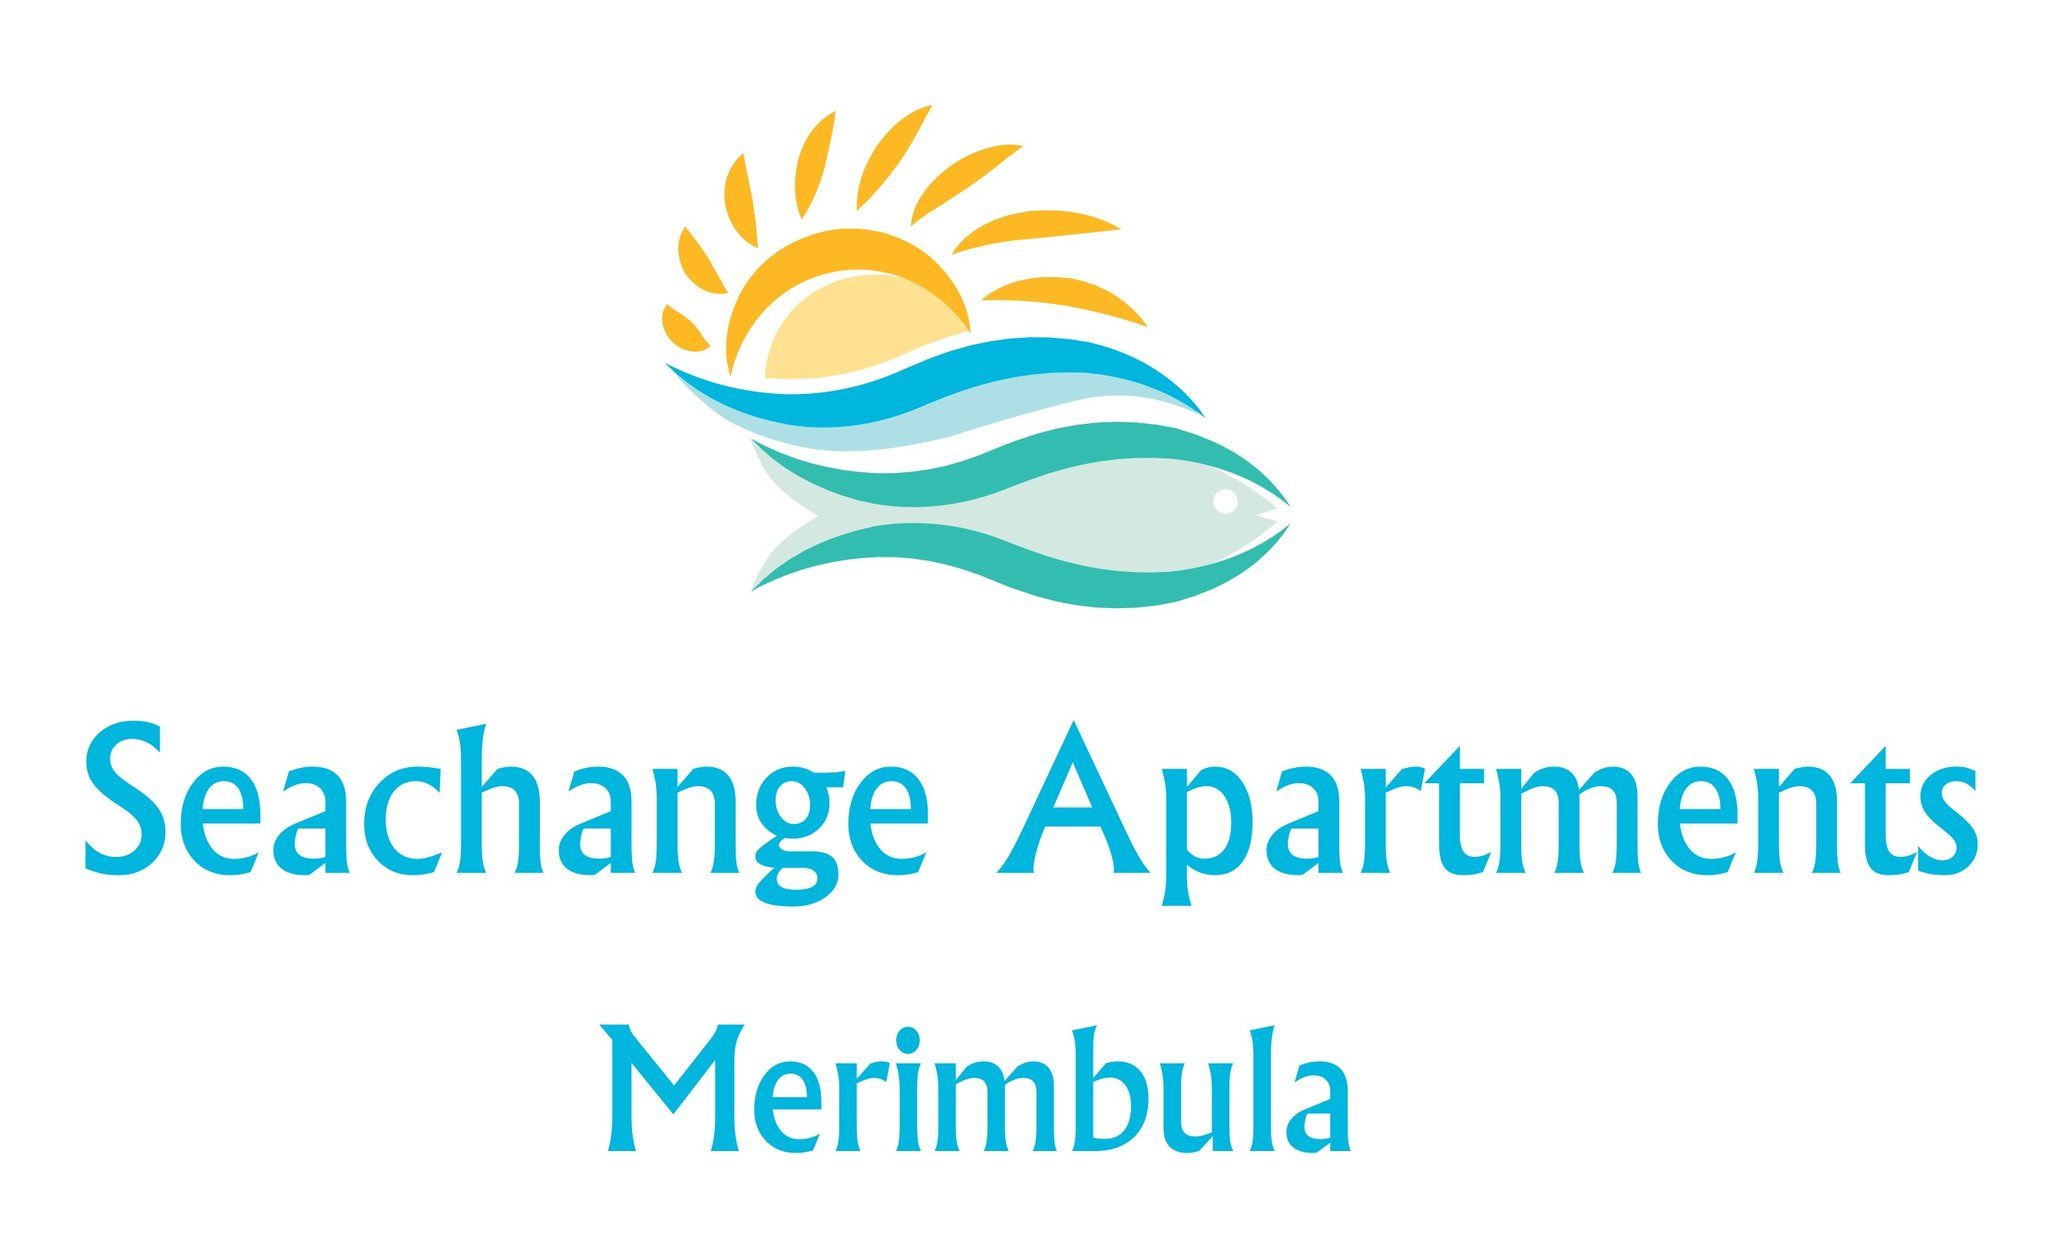 Seachange Apartments Merimbula